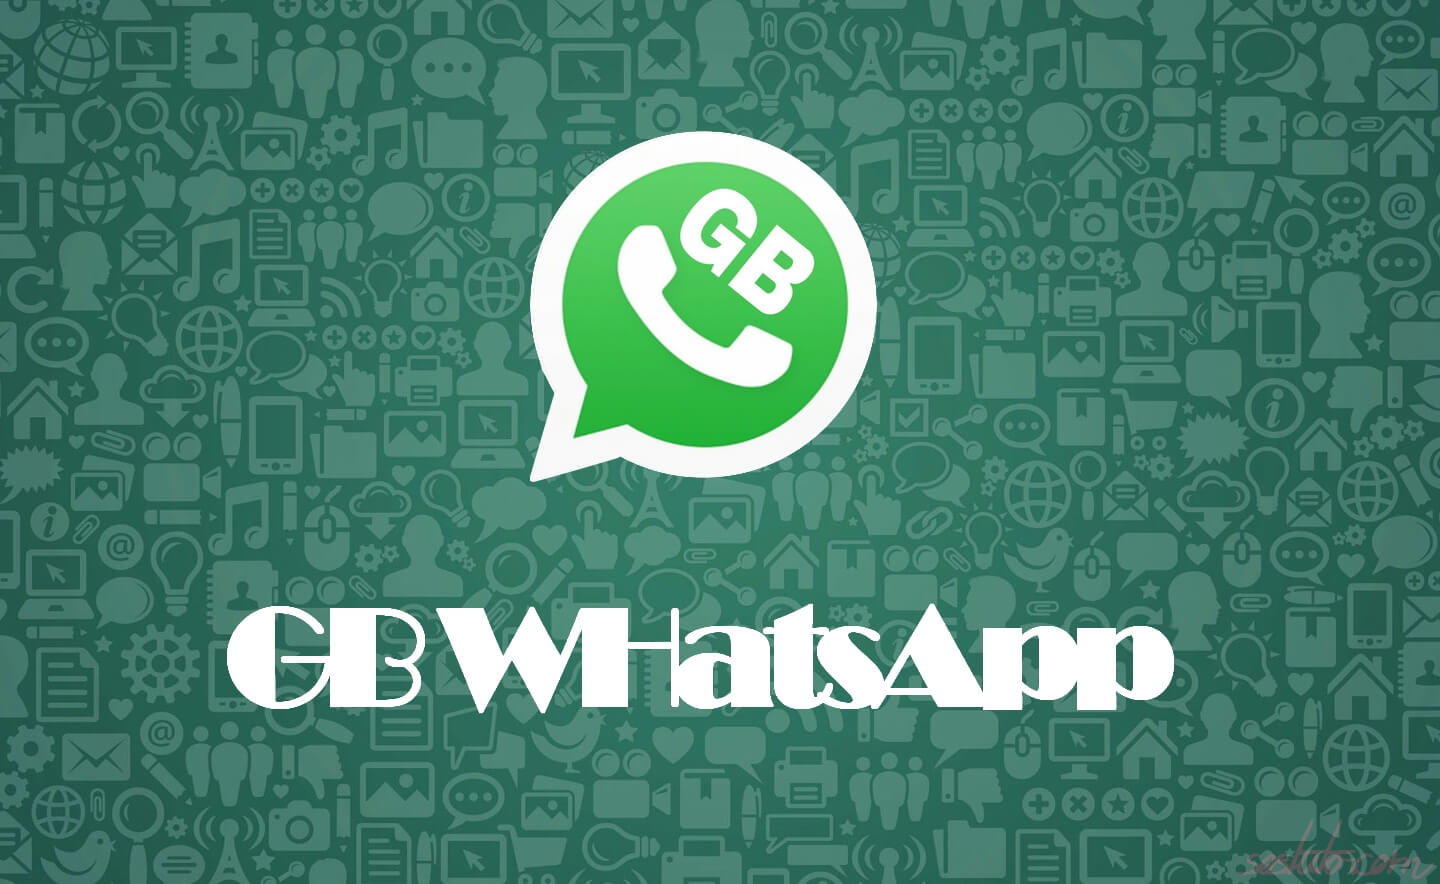 GBWhatsApp Télécharger GBWhatsApp 6.70 et WhatsApp plus 6.70 pour Android